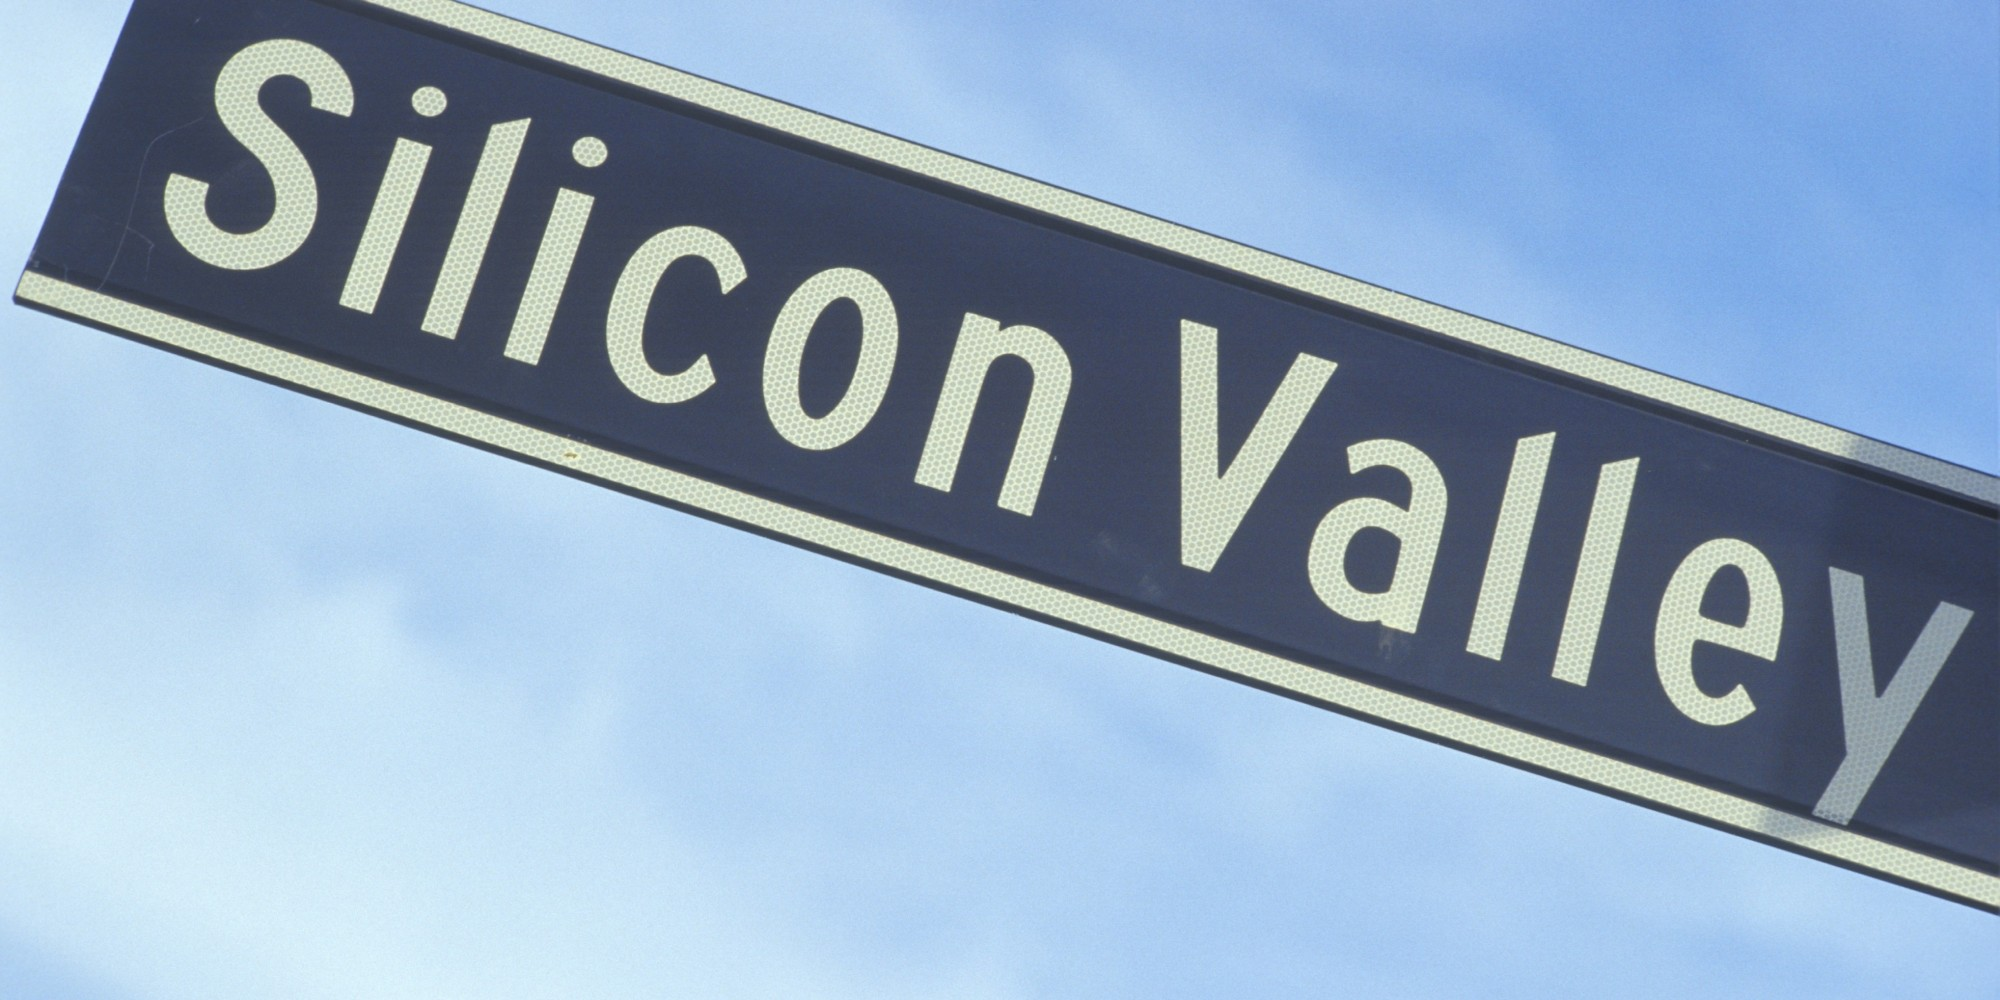 silicon valley Silicon valley has been the center of the computing world for decades but the region is a lot different today than it was 20 or 30 years ago, says one native who's witnessed the changes firsthand.